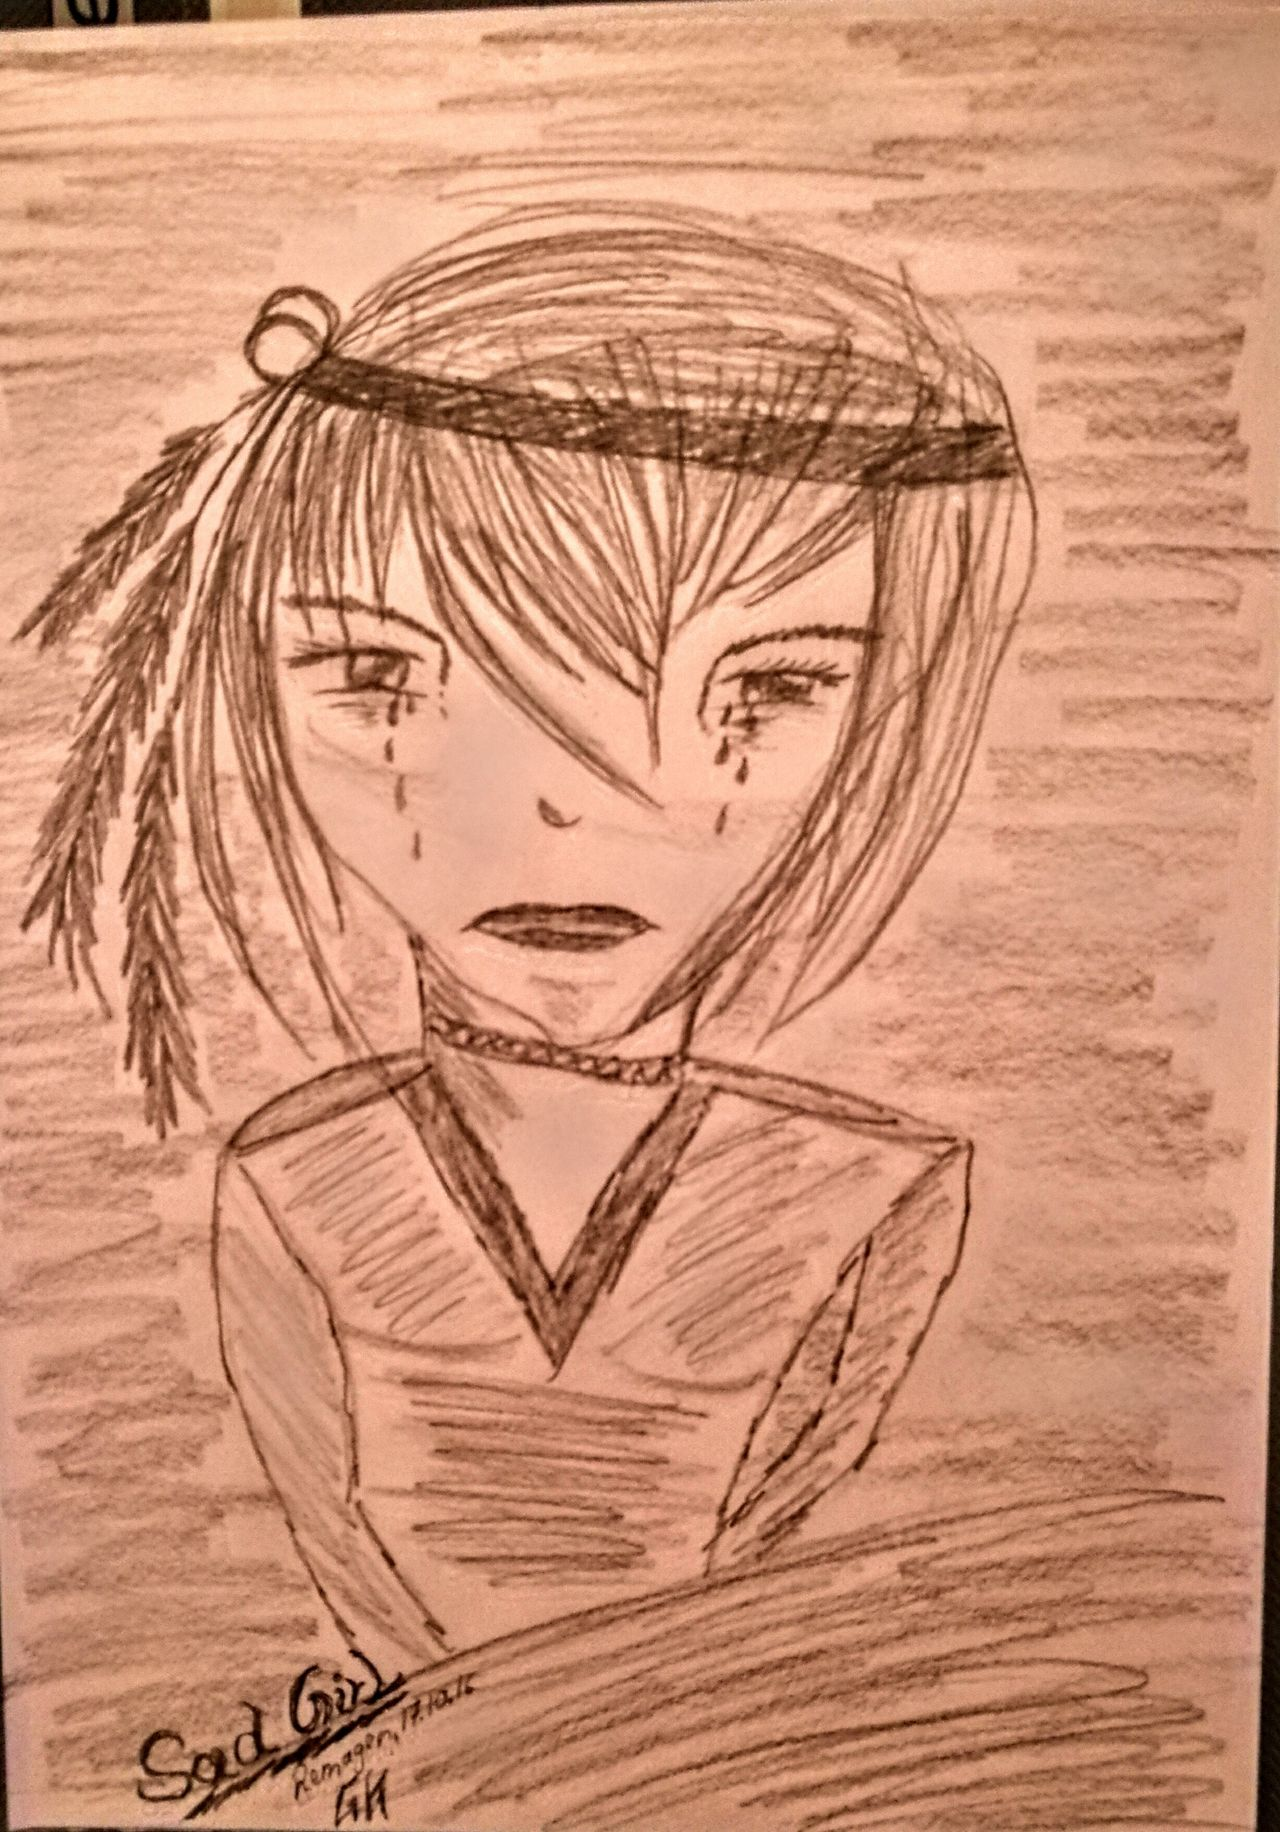 """Today is Day of drawing....a new Manga Girl....""""Sad Girl""""....enjoy... Check This Out Relaxing Art, Drawing, Creativity Enjoying Life Creativity Pivotal Ideas Drawing Originalpicture Individual Picture Manga Mangagirl Sadness My Drawing"""